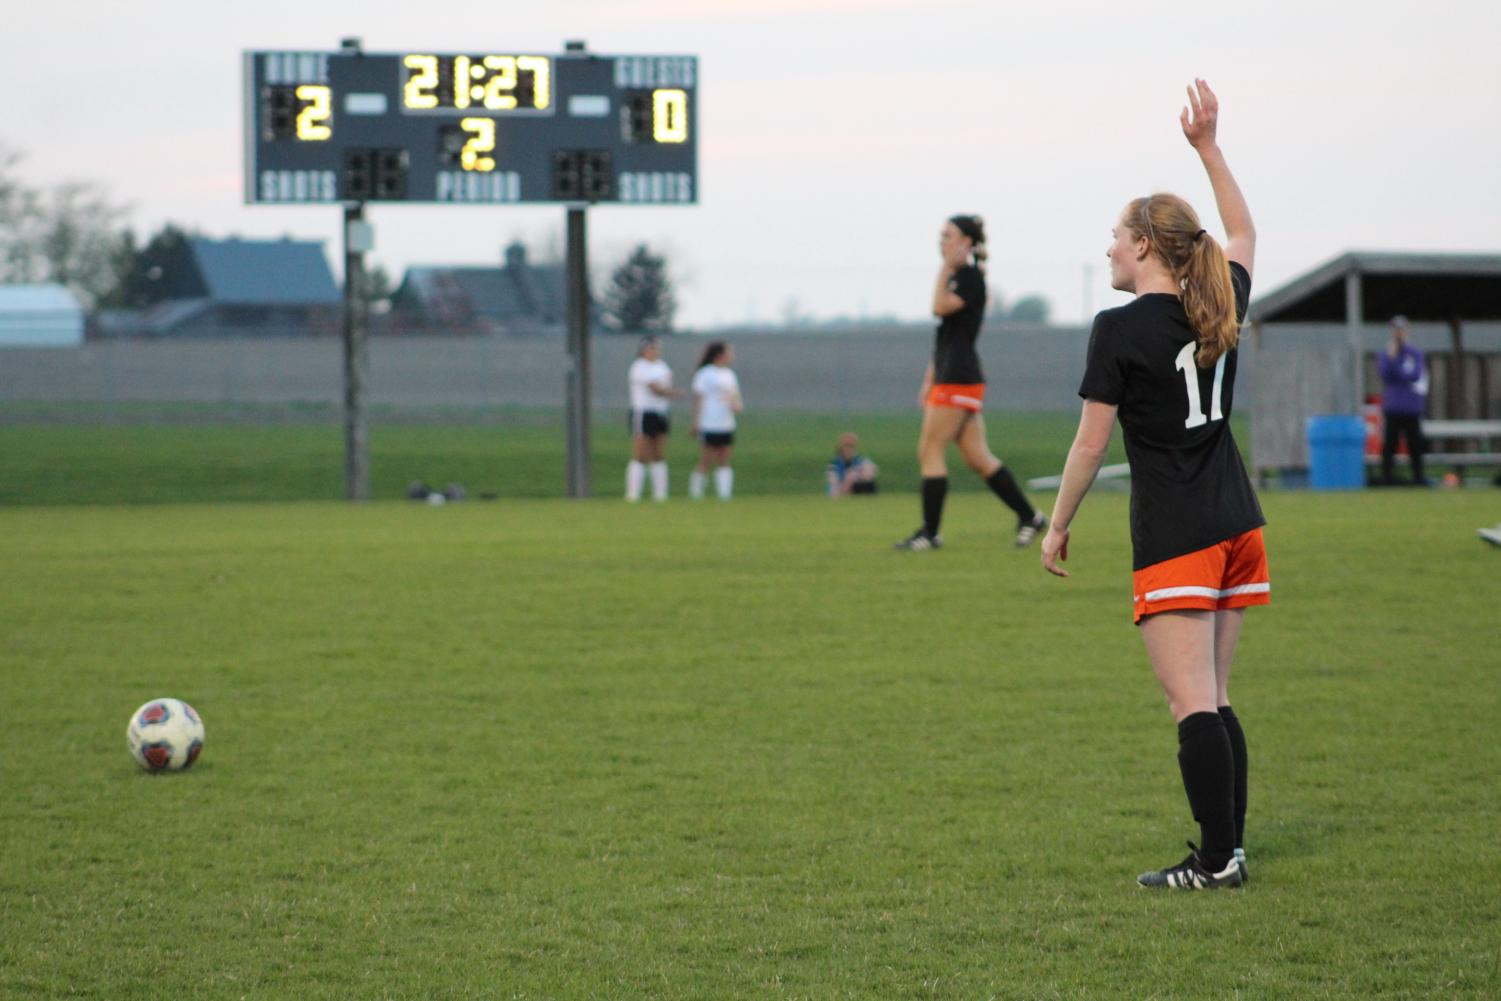 Maggie+Peters+prepares+to+kick+the+ball+following+a+penalty.